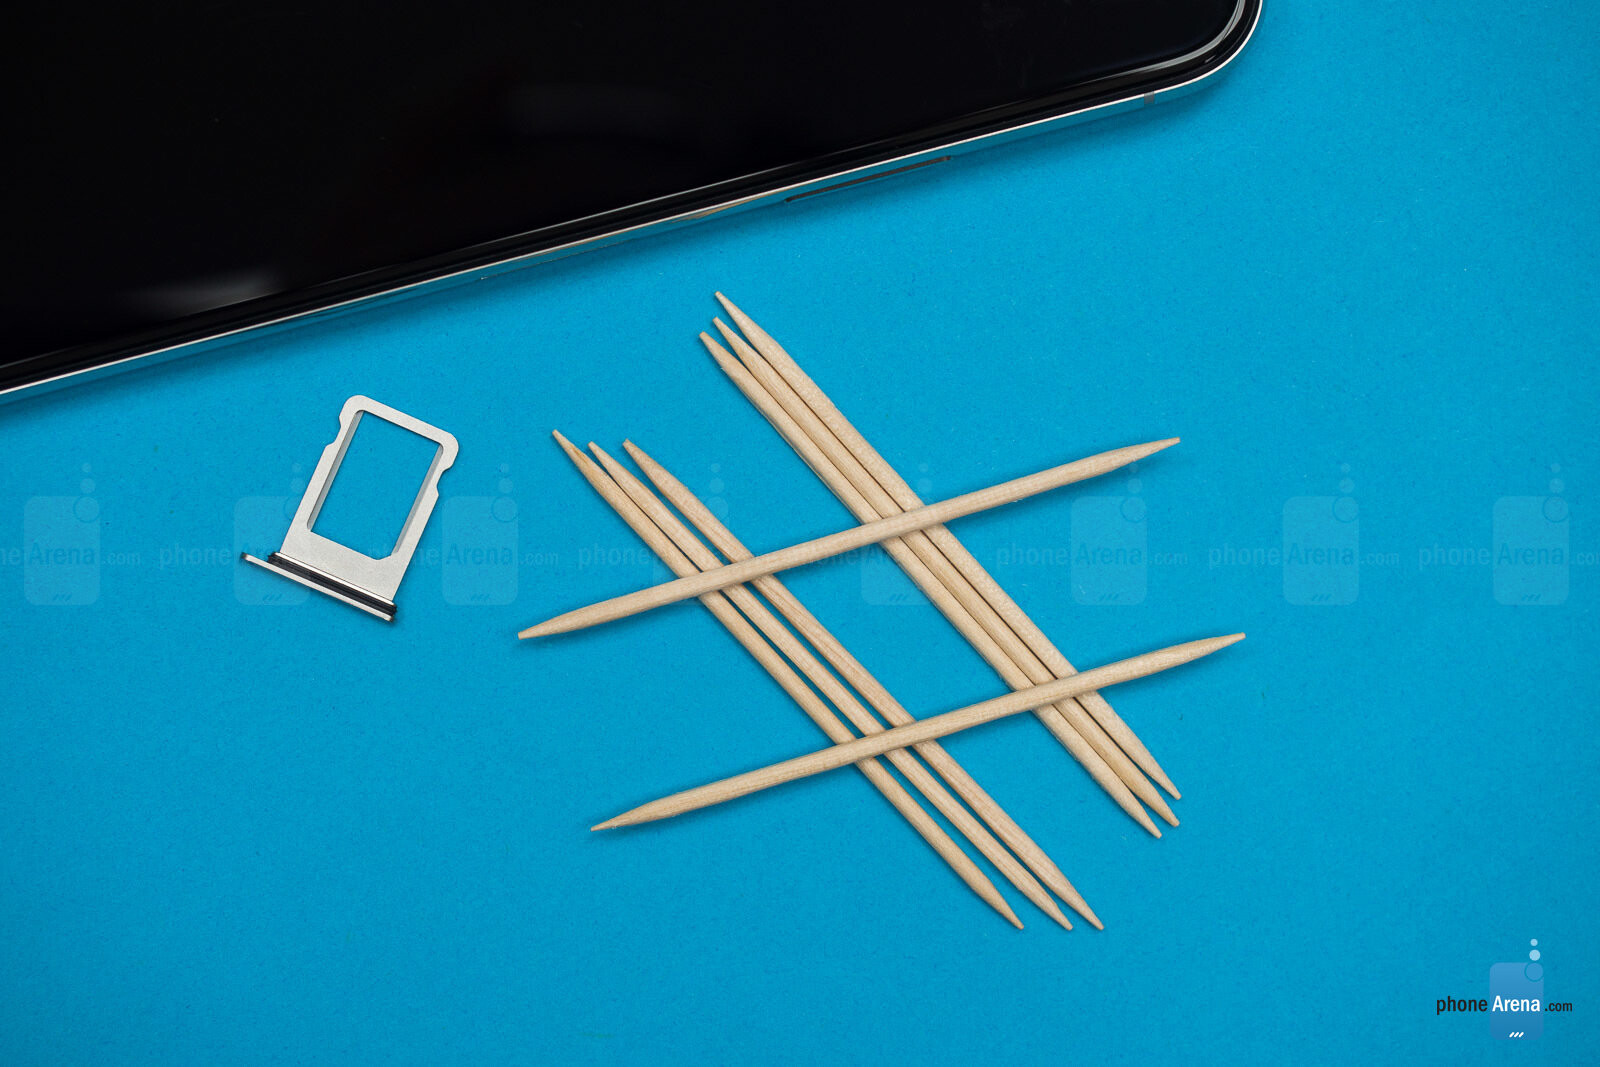 How to open a SIM card tray when an ejector tool isn't around (the